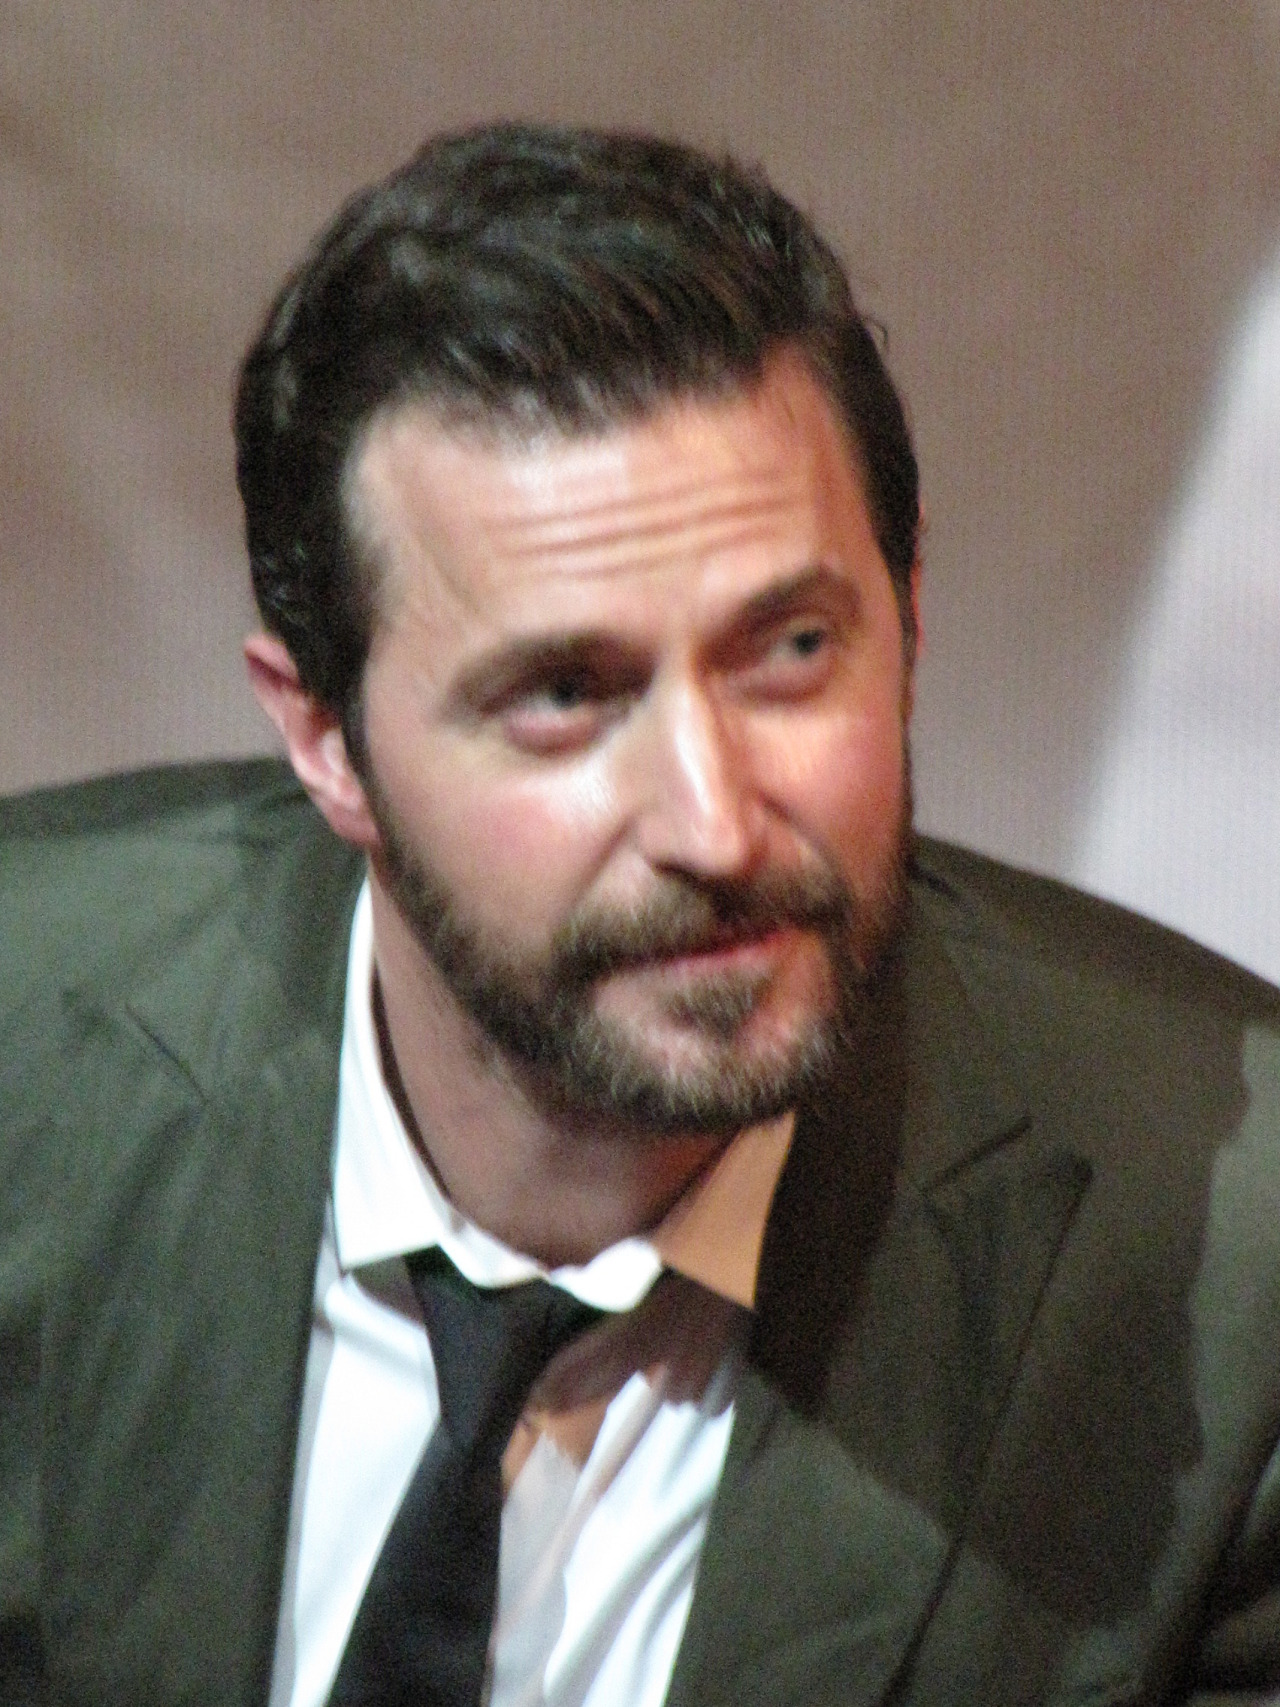 endorwitch:  Richard Armitage Popcorn Taxi Q&A - May 1 2013.Hayden Orpheum - Cremorne, Sydney.Good camera pics - part 4